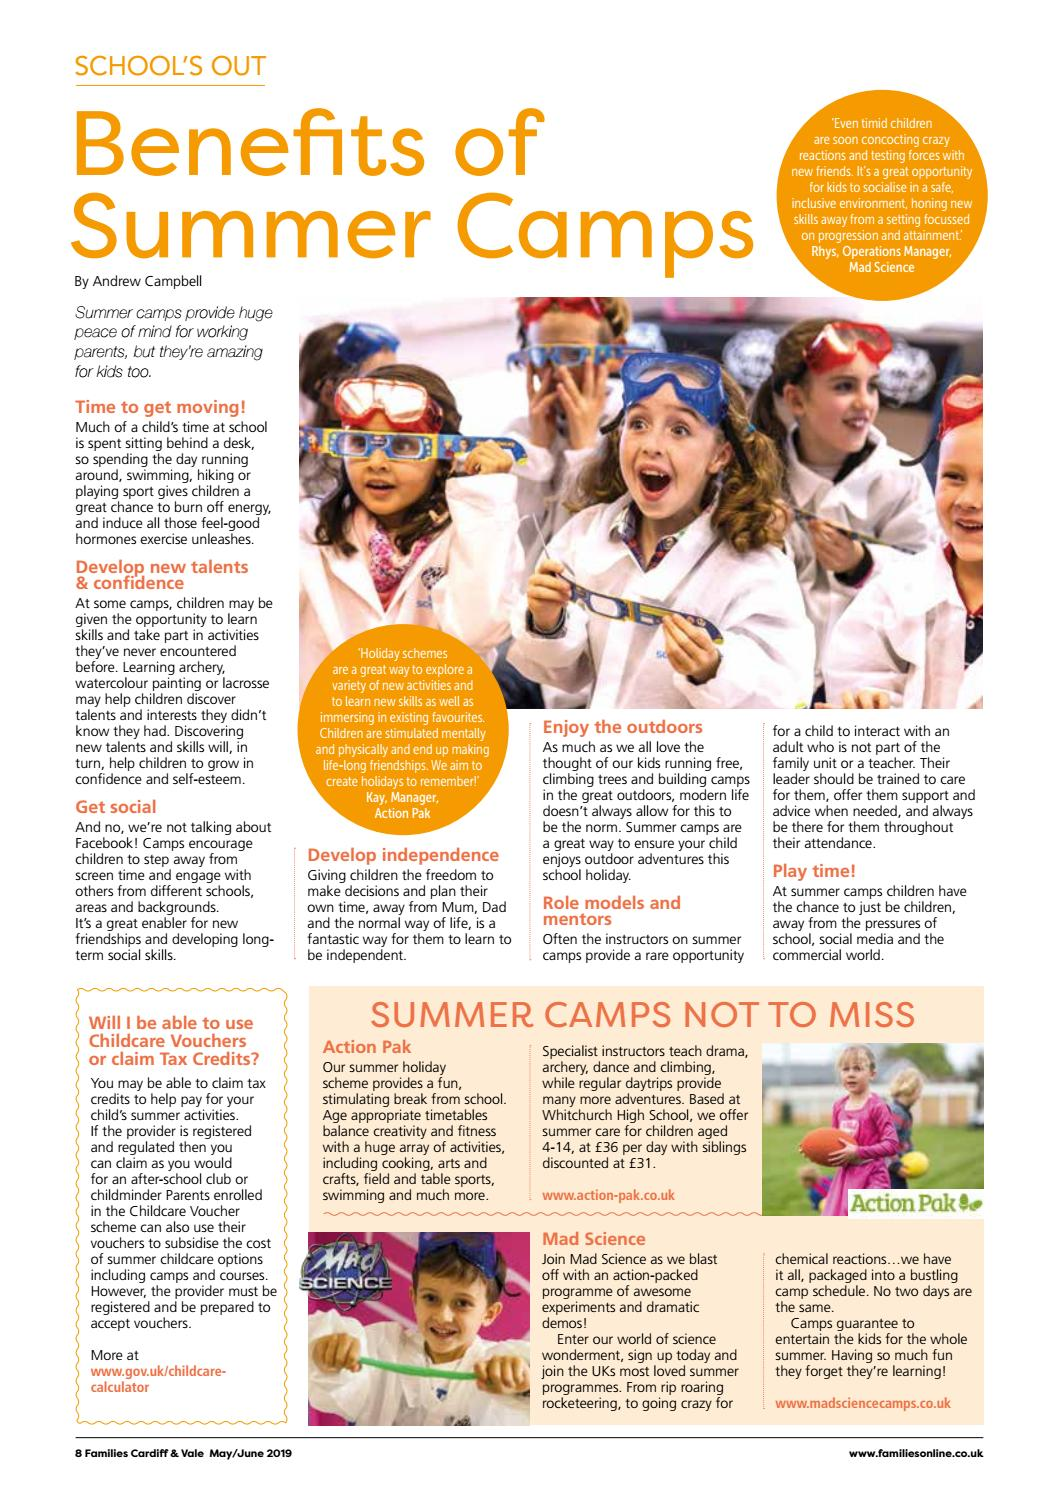 Families Cardiff & Vale Magazine (May/June 2019) by Families